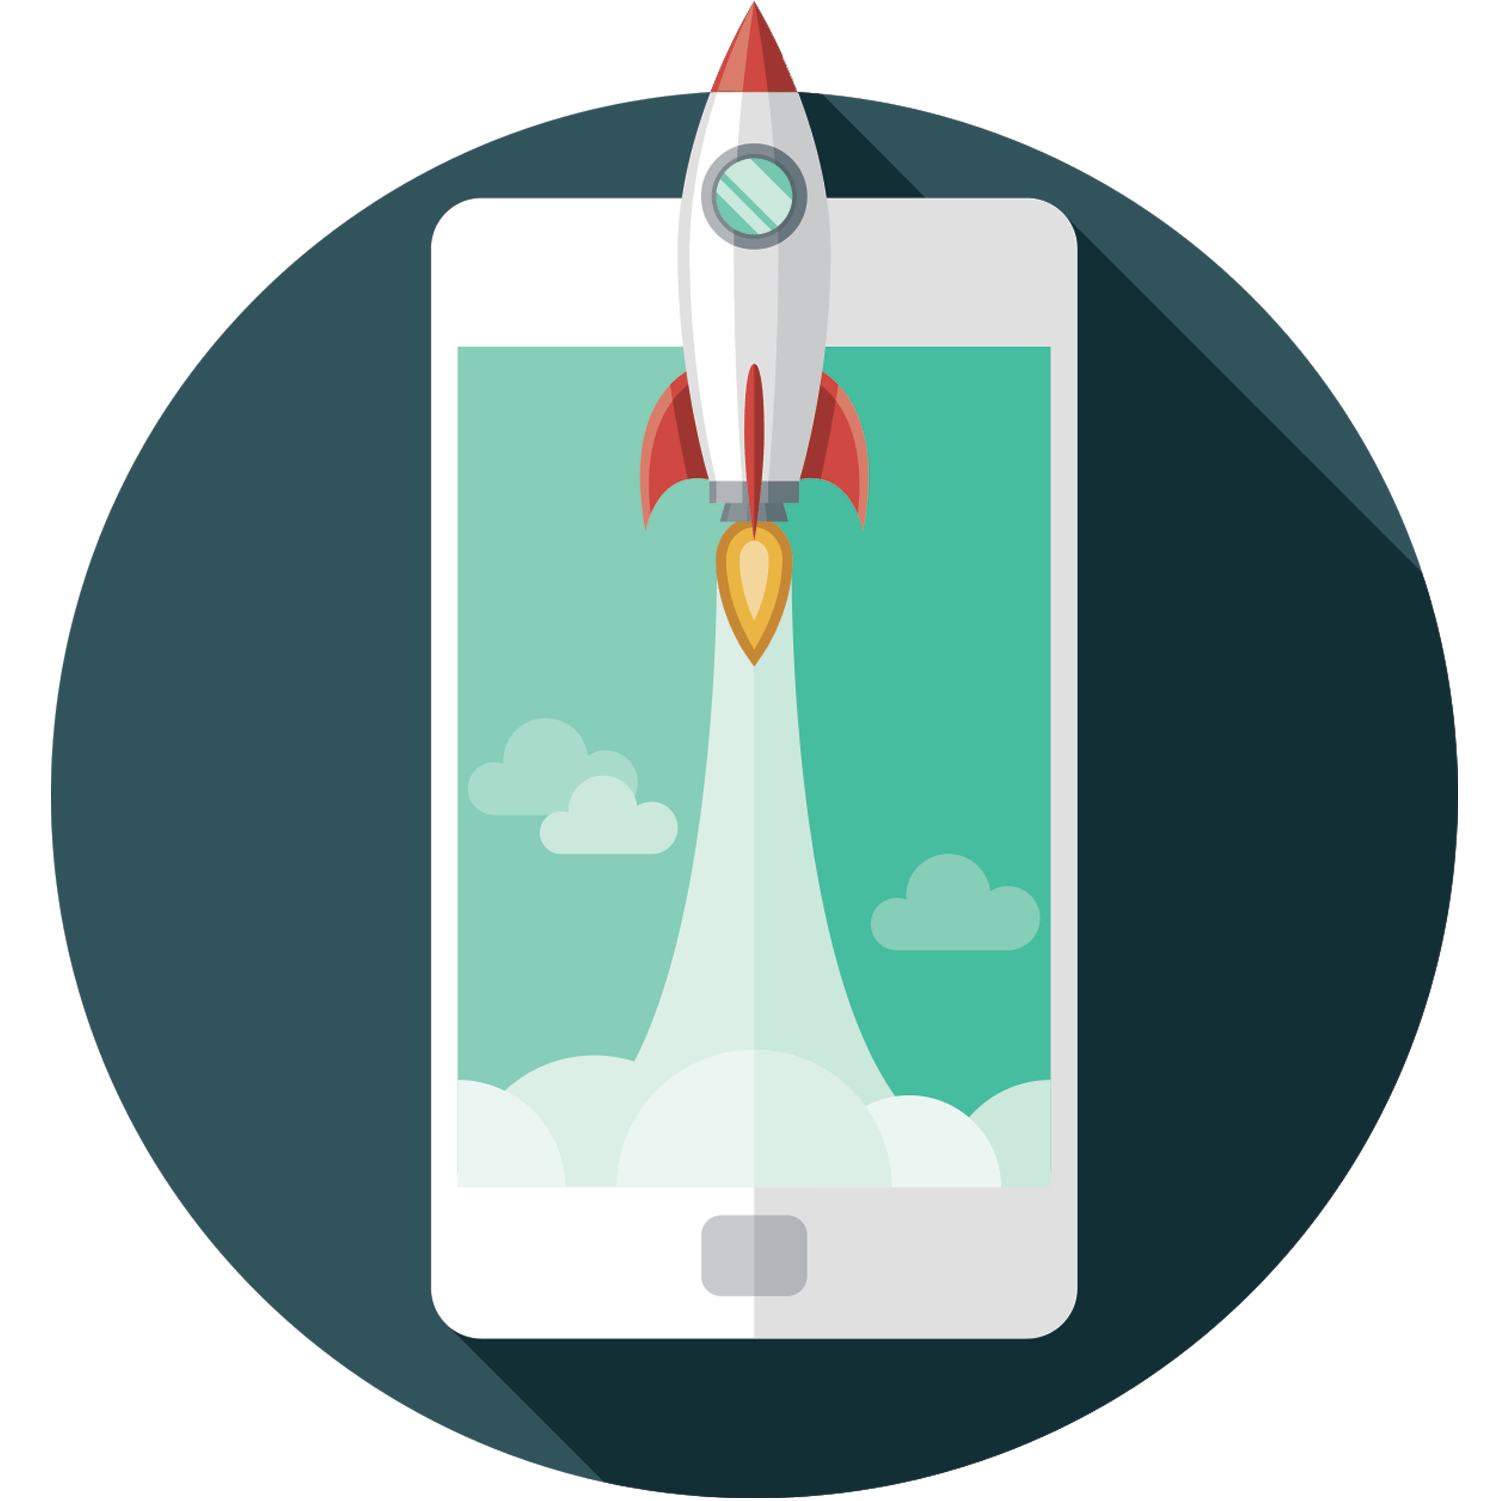 Icon of a rocket ship blasting off of a cell phone